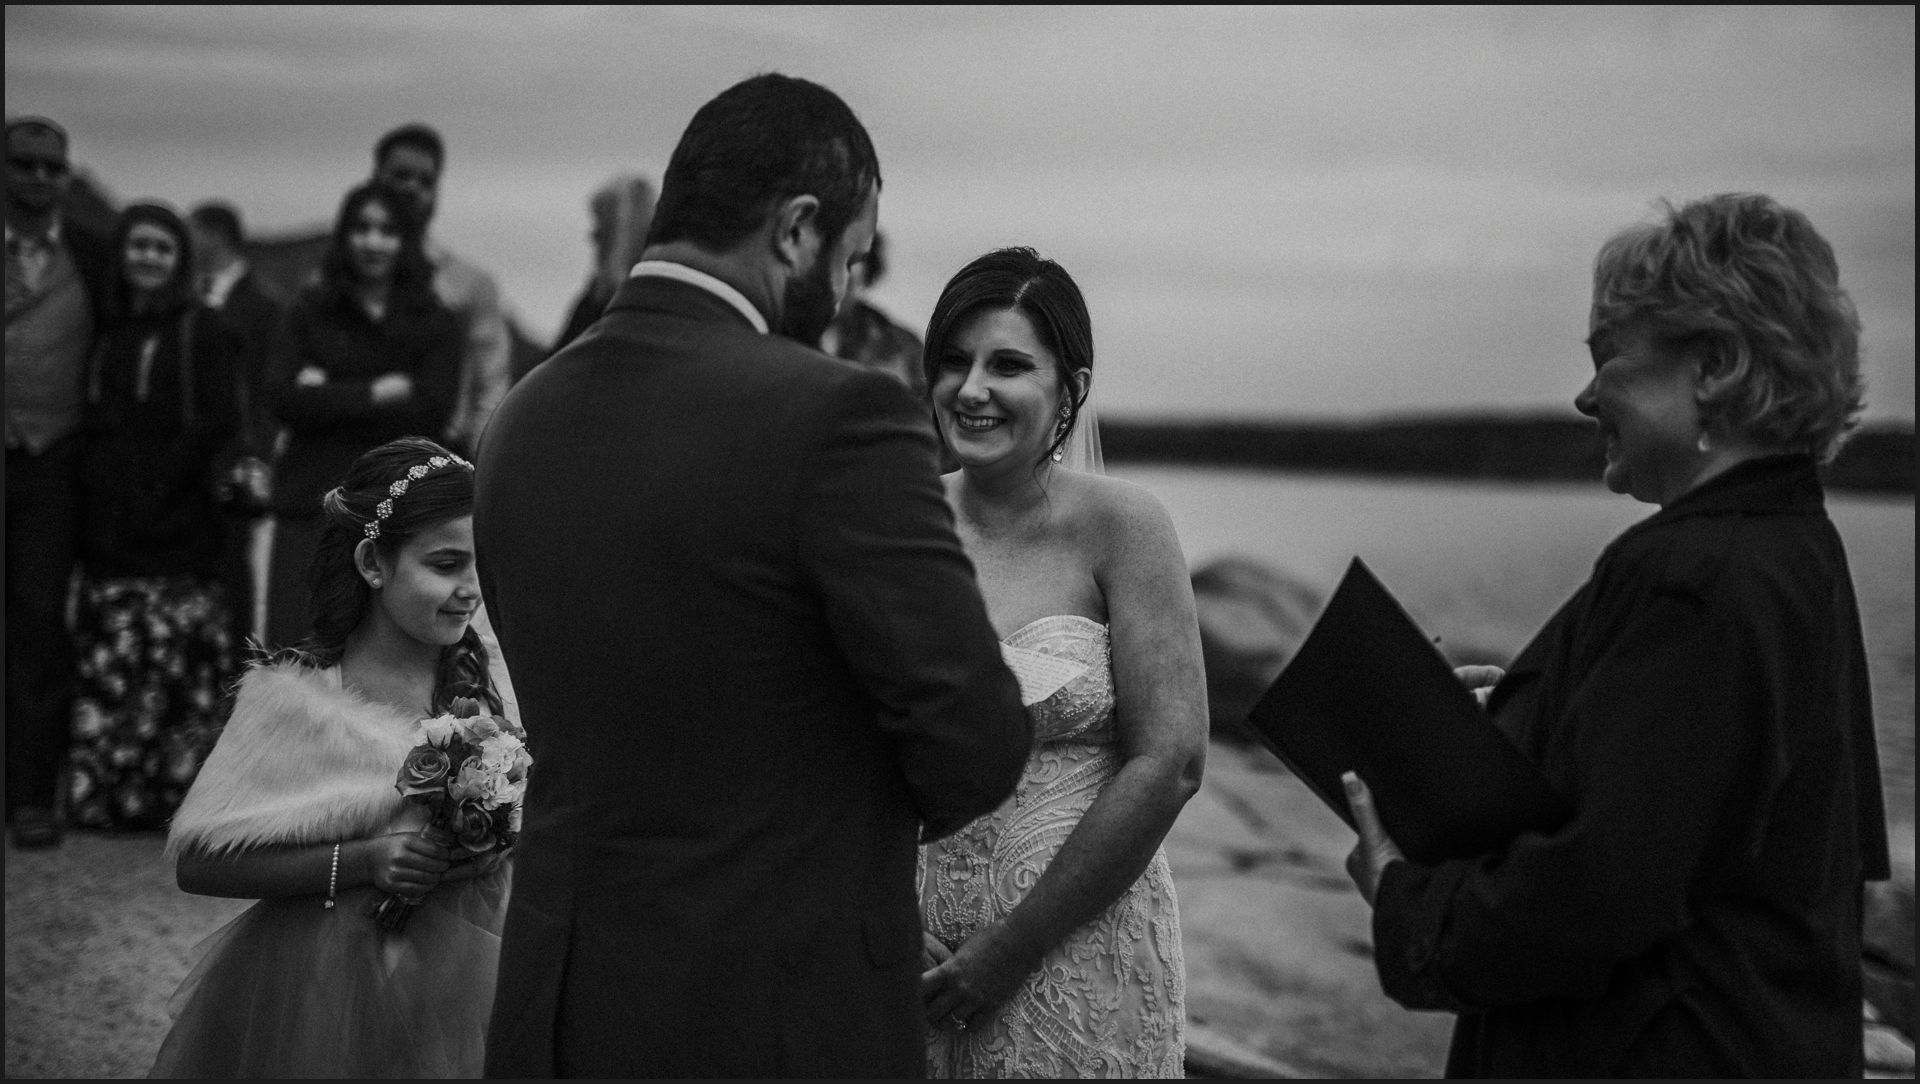 wedding by the sea, maine, cliff, ceremony, celebrant, ocean view, acadia national park